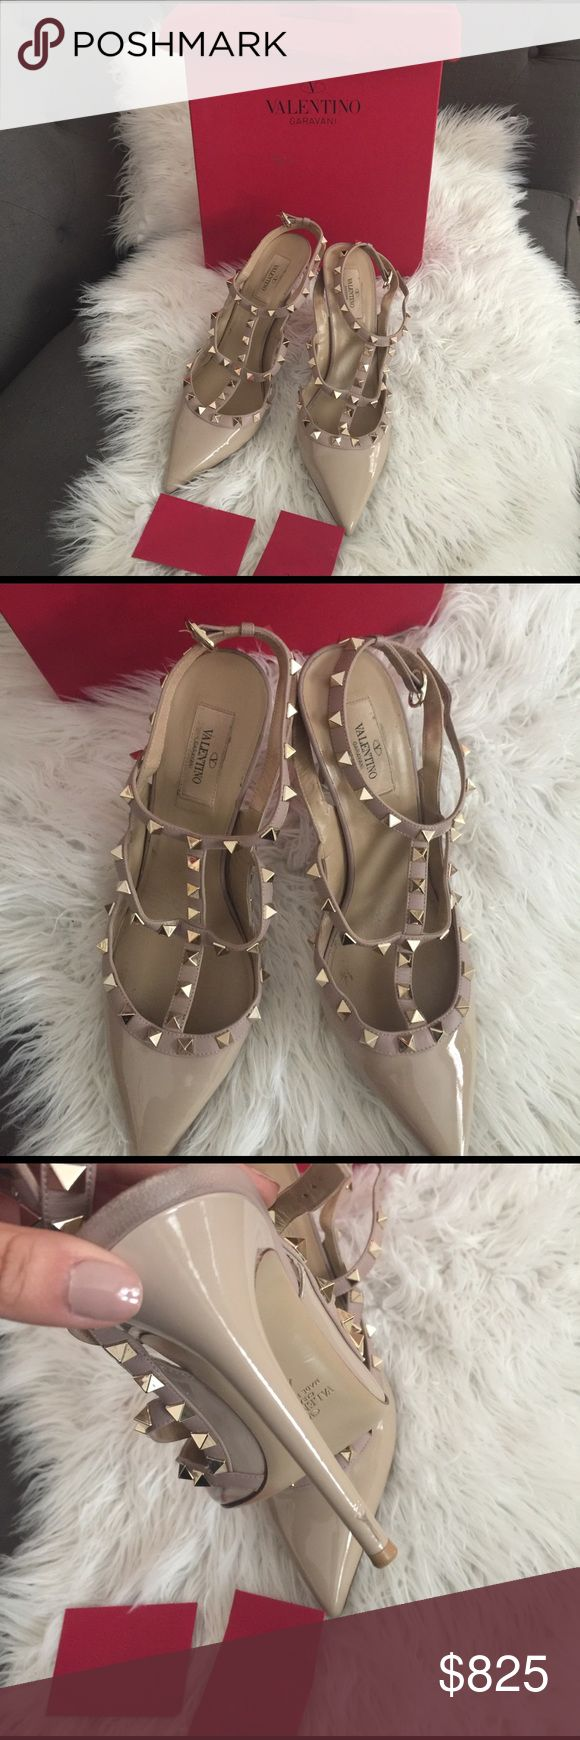 Valentino Rockstud pumps!! Cream Valentino Rockstuds. Worn 4 times, little scratch on heel of right shoe. Otherwise, in great condition! Perfect for spring, ladies! Valentino Shoes Heels